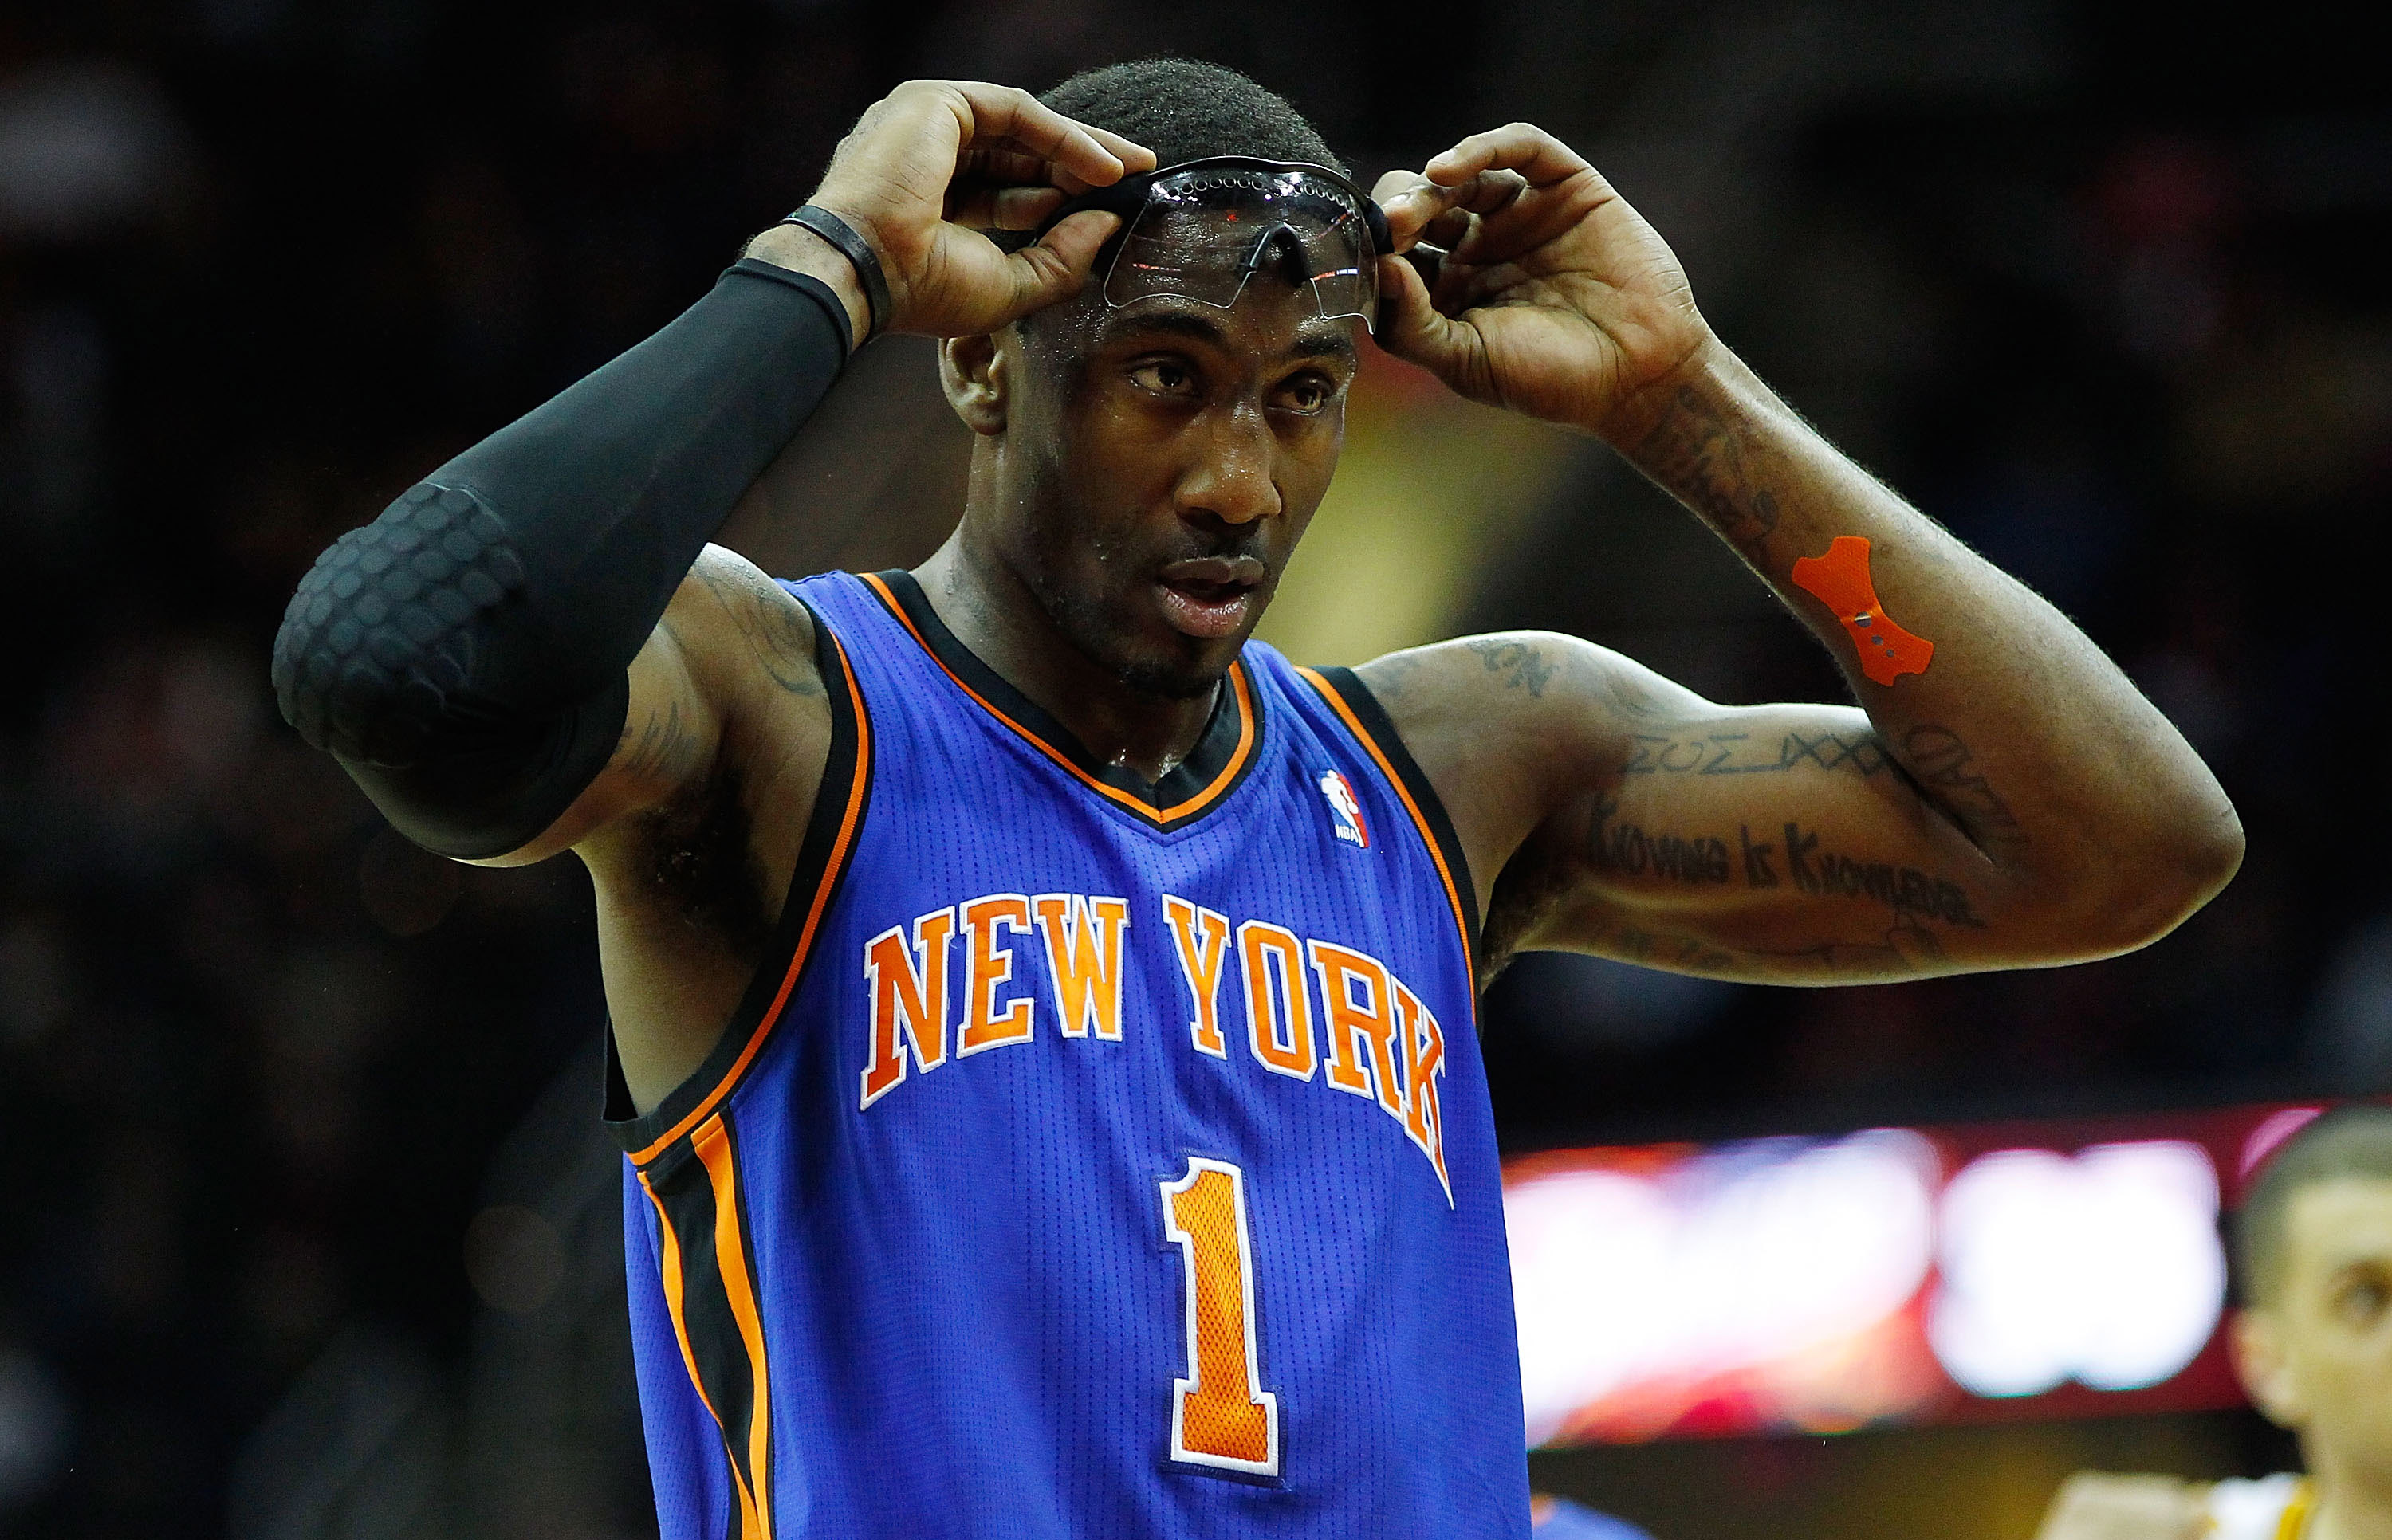 CLEVELAND, OH - FEBRUARY 25:  Amar'e Stoudemire #1 of the New York Knicks stands at the free throw line during the game against the Cleveland Cavaliers on February 25, 2011 at Quicken Loans Arena in Cleveland, Ohio. NOTE TO USER: User expressly acknowledg